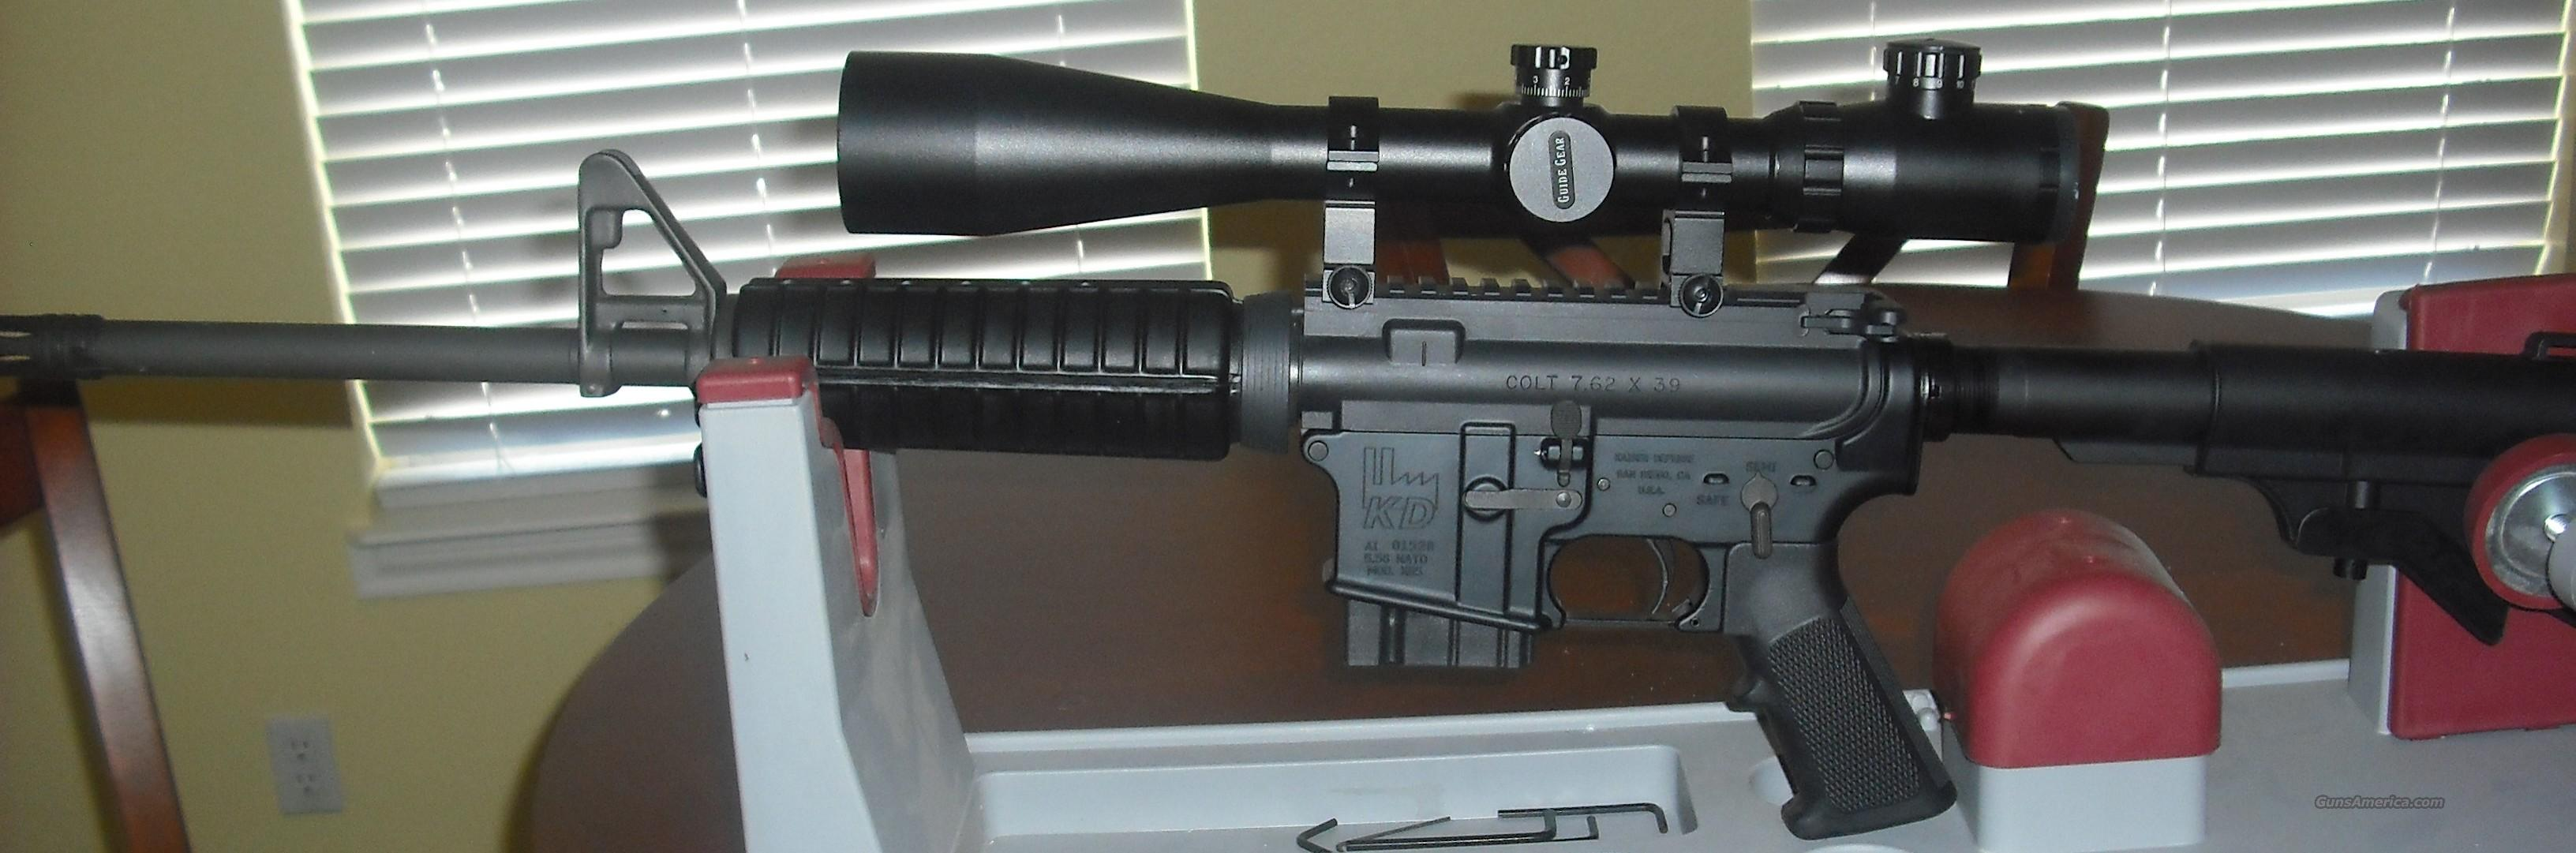 AR-15 , COLT upper in 762x39 with  scope   Guns > Rifles > AR-15 Rifles - Small Manufacturers > Complete Rifle